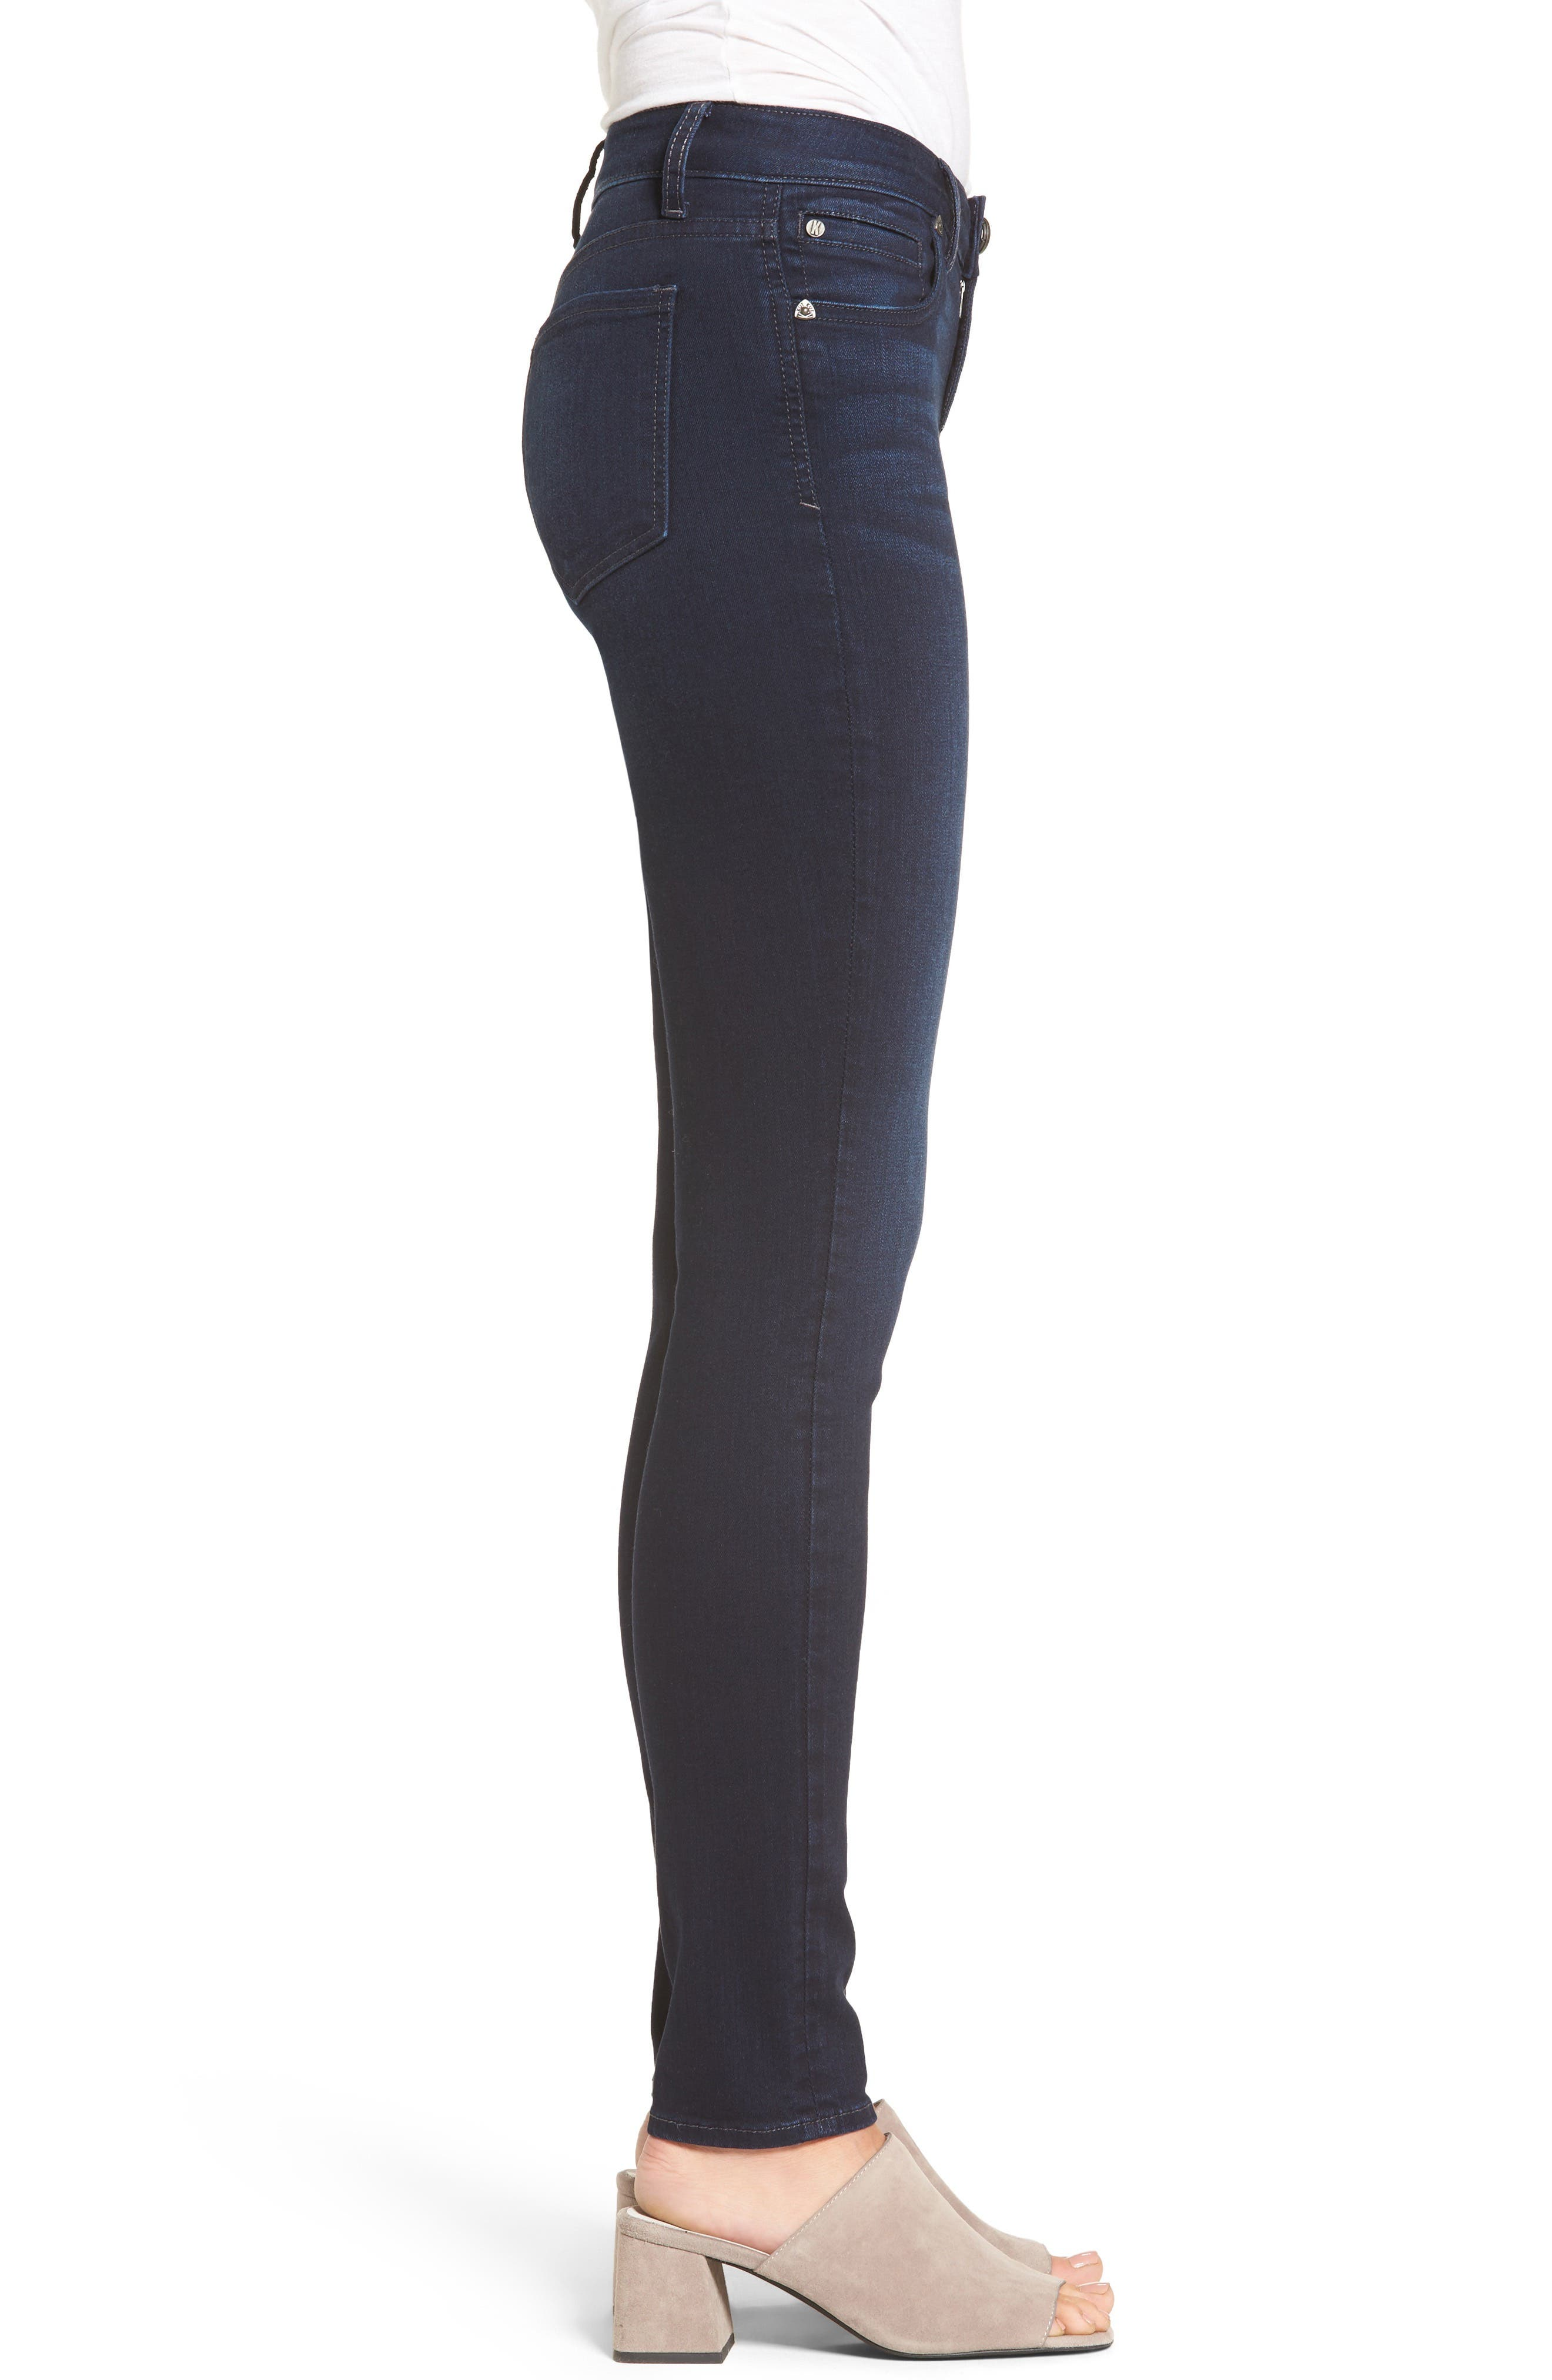 Diana Stretch Skinny Jeans,                             Alternate thumbnail 3, color,                             490